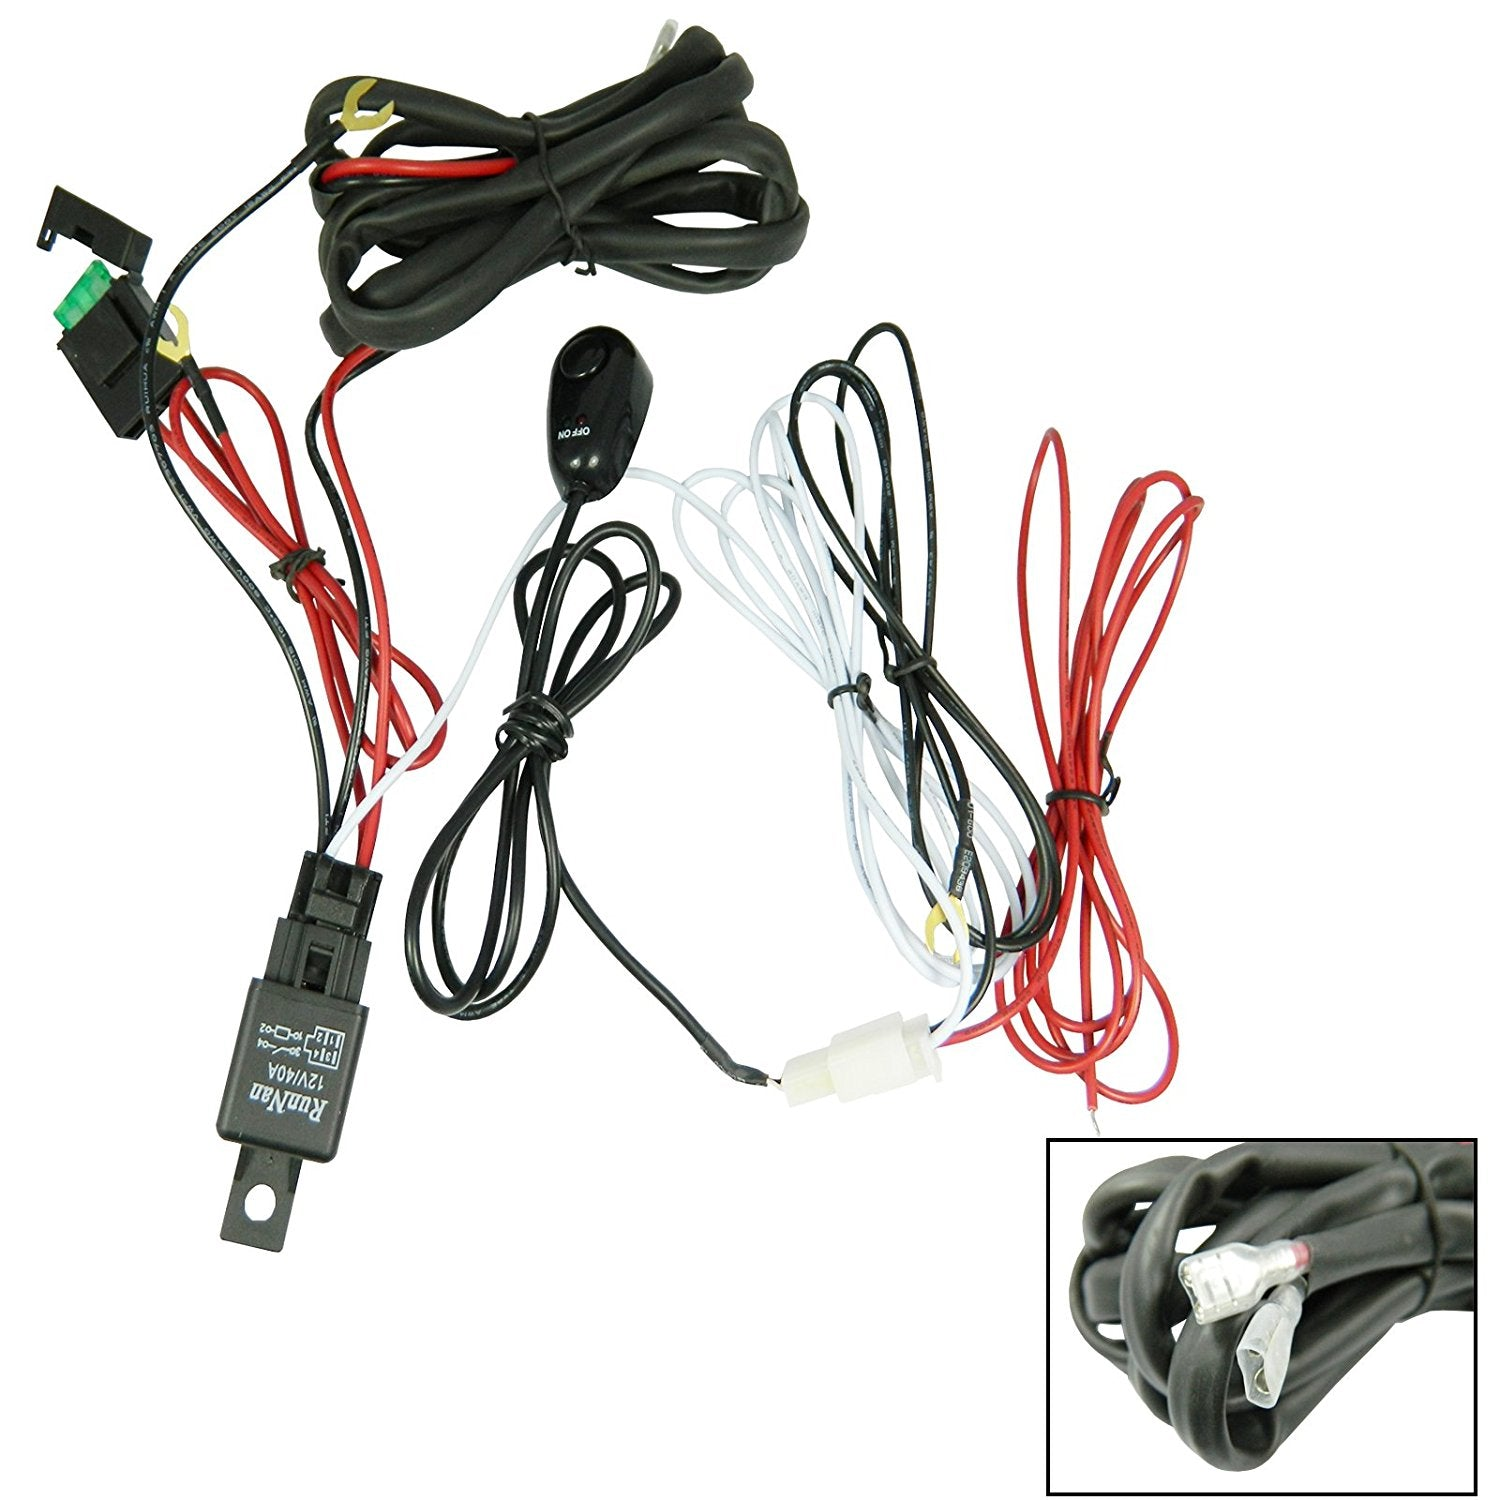 Universal Led Light Bar Wire Harness on led light bar filter, led light bar power cord, led light bar pin, led light bar housing, led light bar cover, led light bar circuit board, led light bar hardware,